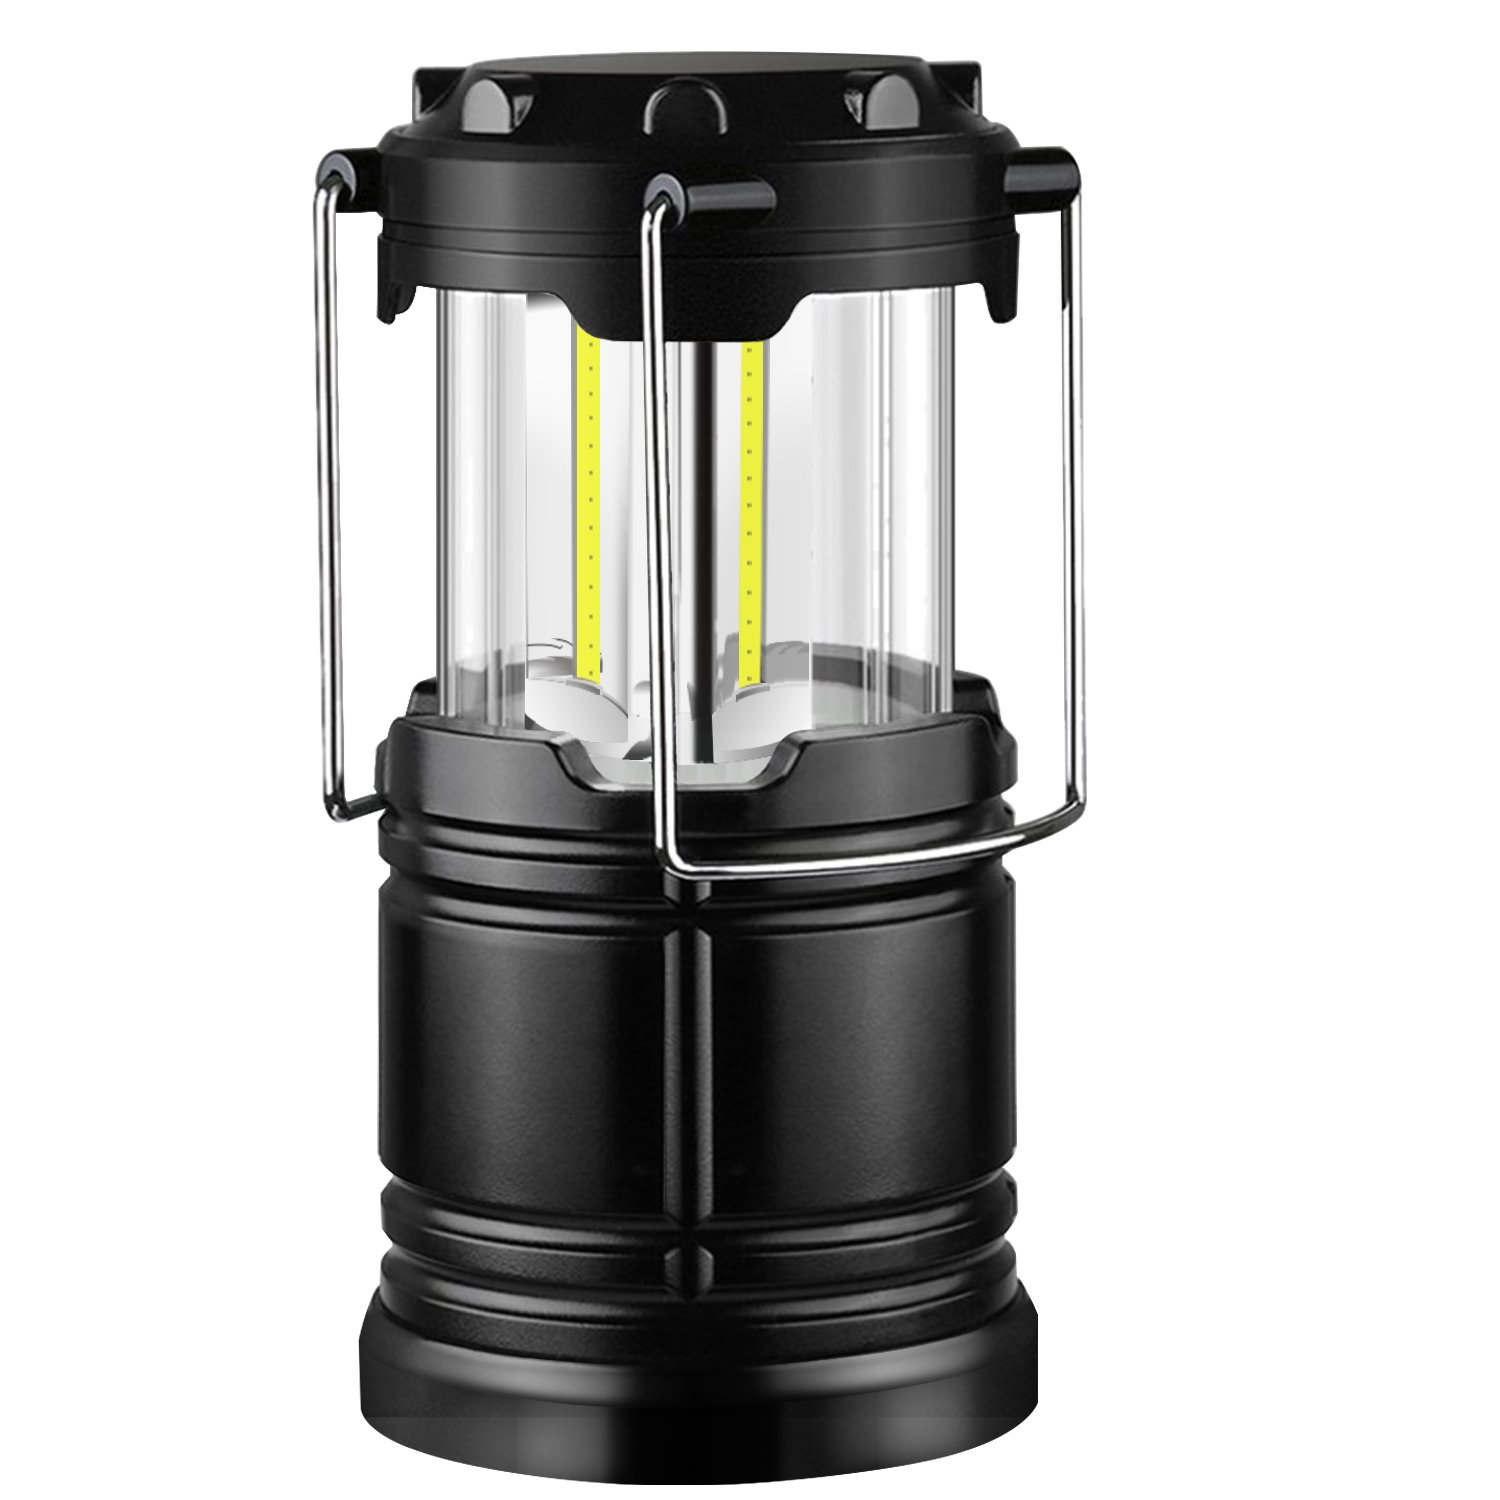 Camping Lantern Waterproof Portable LED Collapsible Flashlights Survival Kit for Emergency Hurricane Outage (Package of 1)